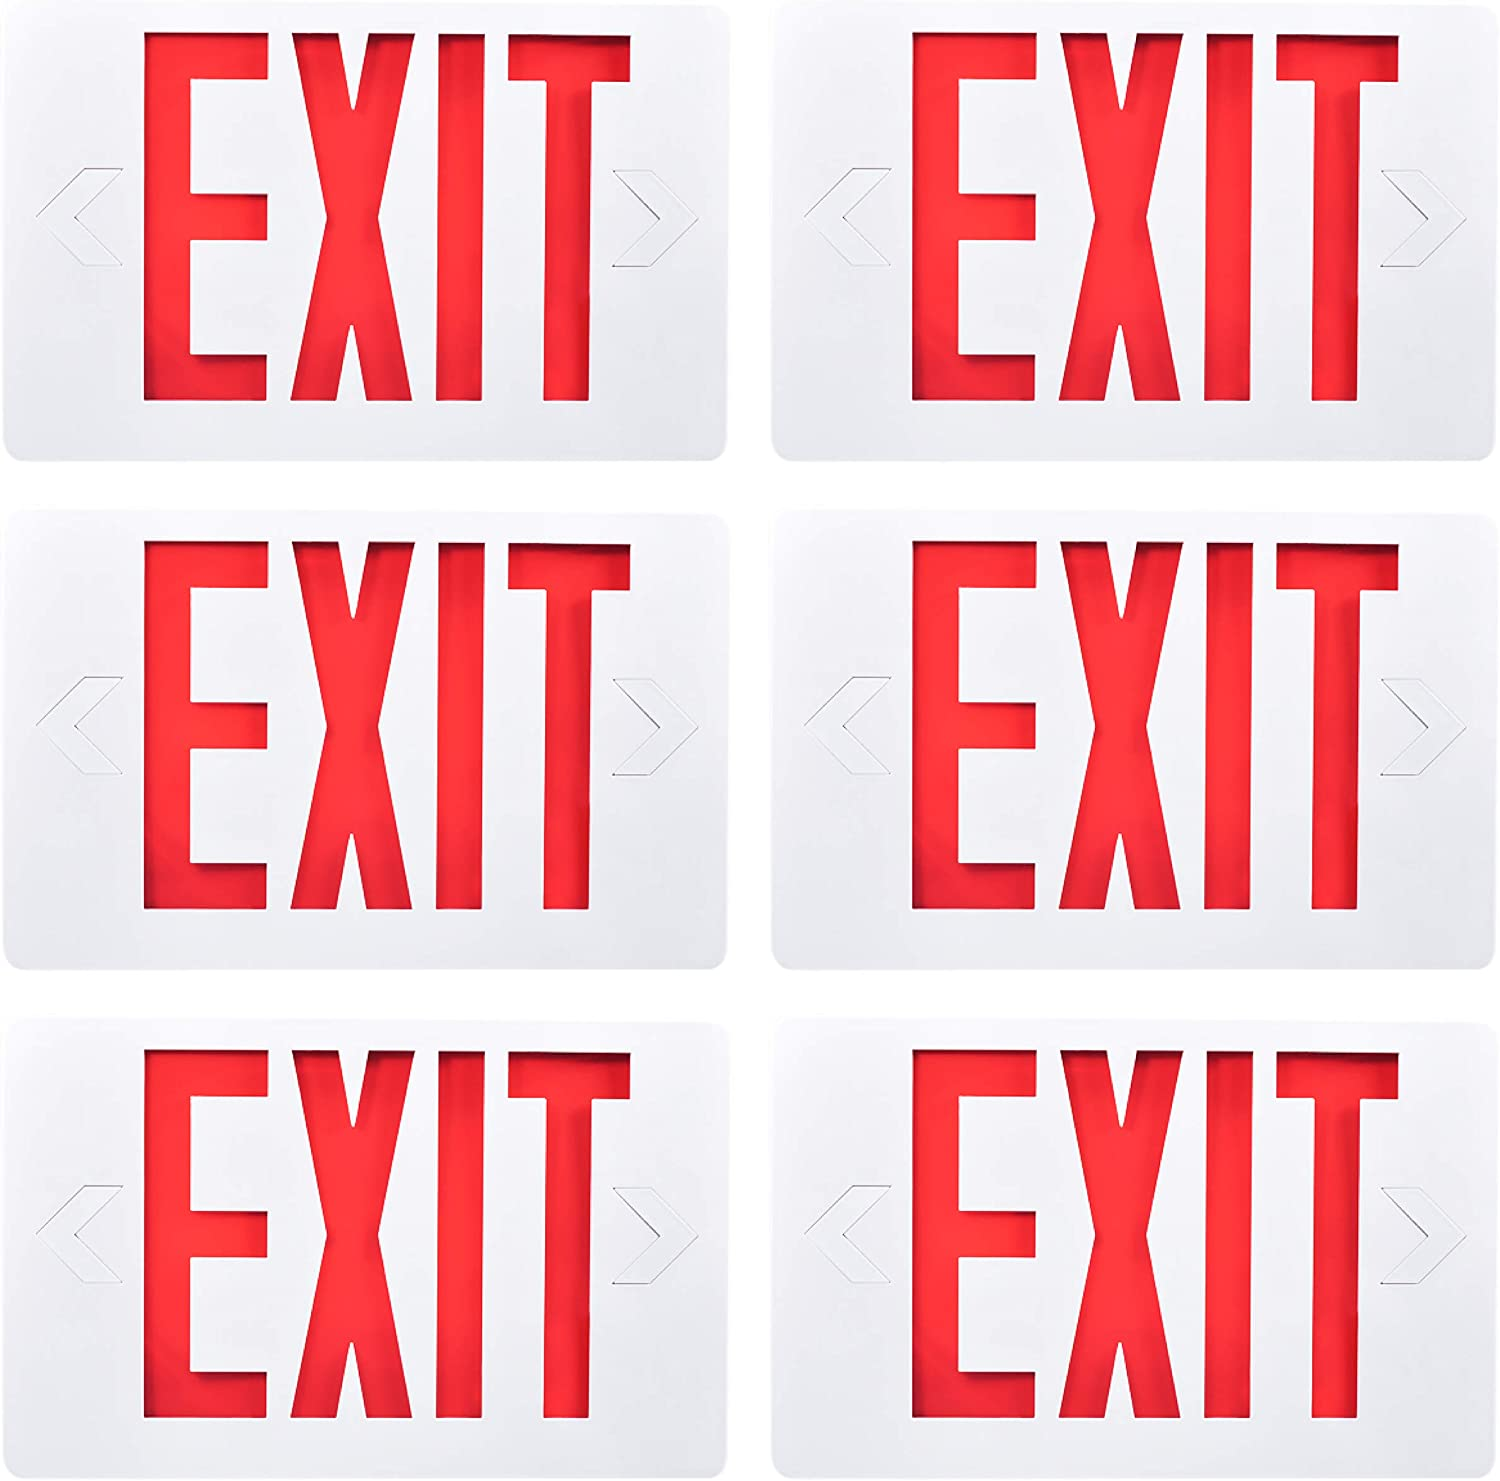 Sunco Lighting 6 Pack Double Sided LED Emergency EXIT Sign, Backup Battery, US Standard Red Letter Emergency Exit Lighting, Commercial Grade, 120-277V, Fire Resistant (UL 94V-0)